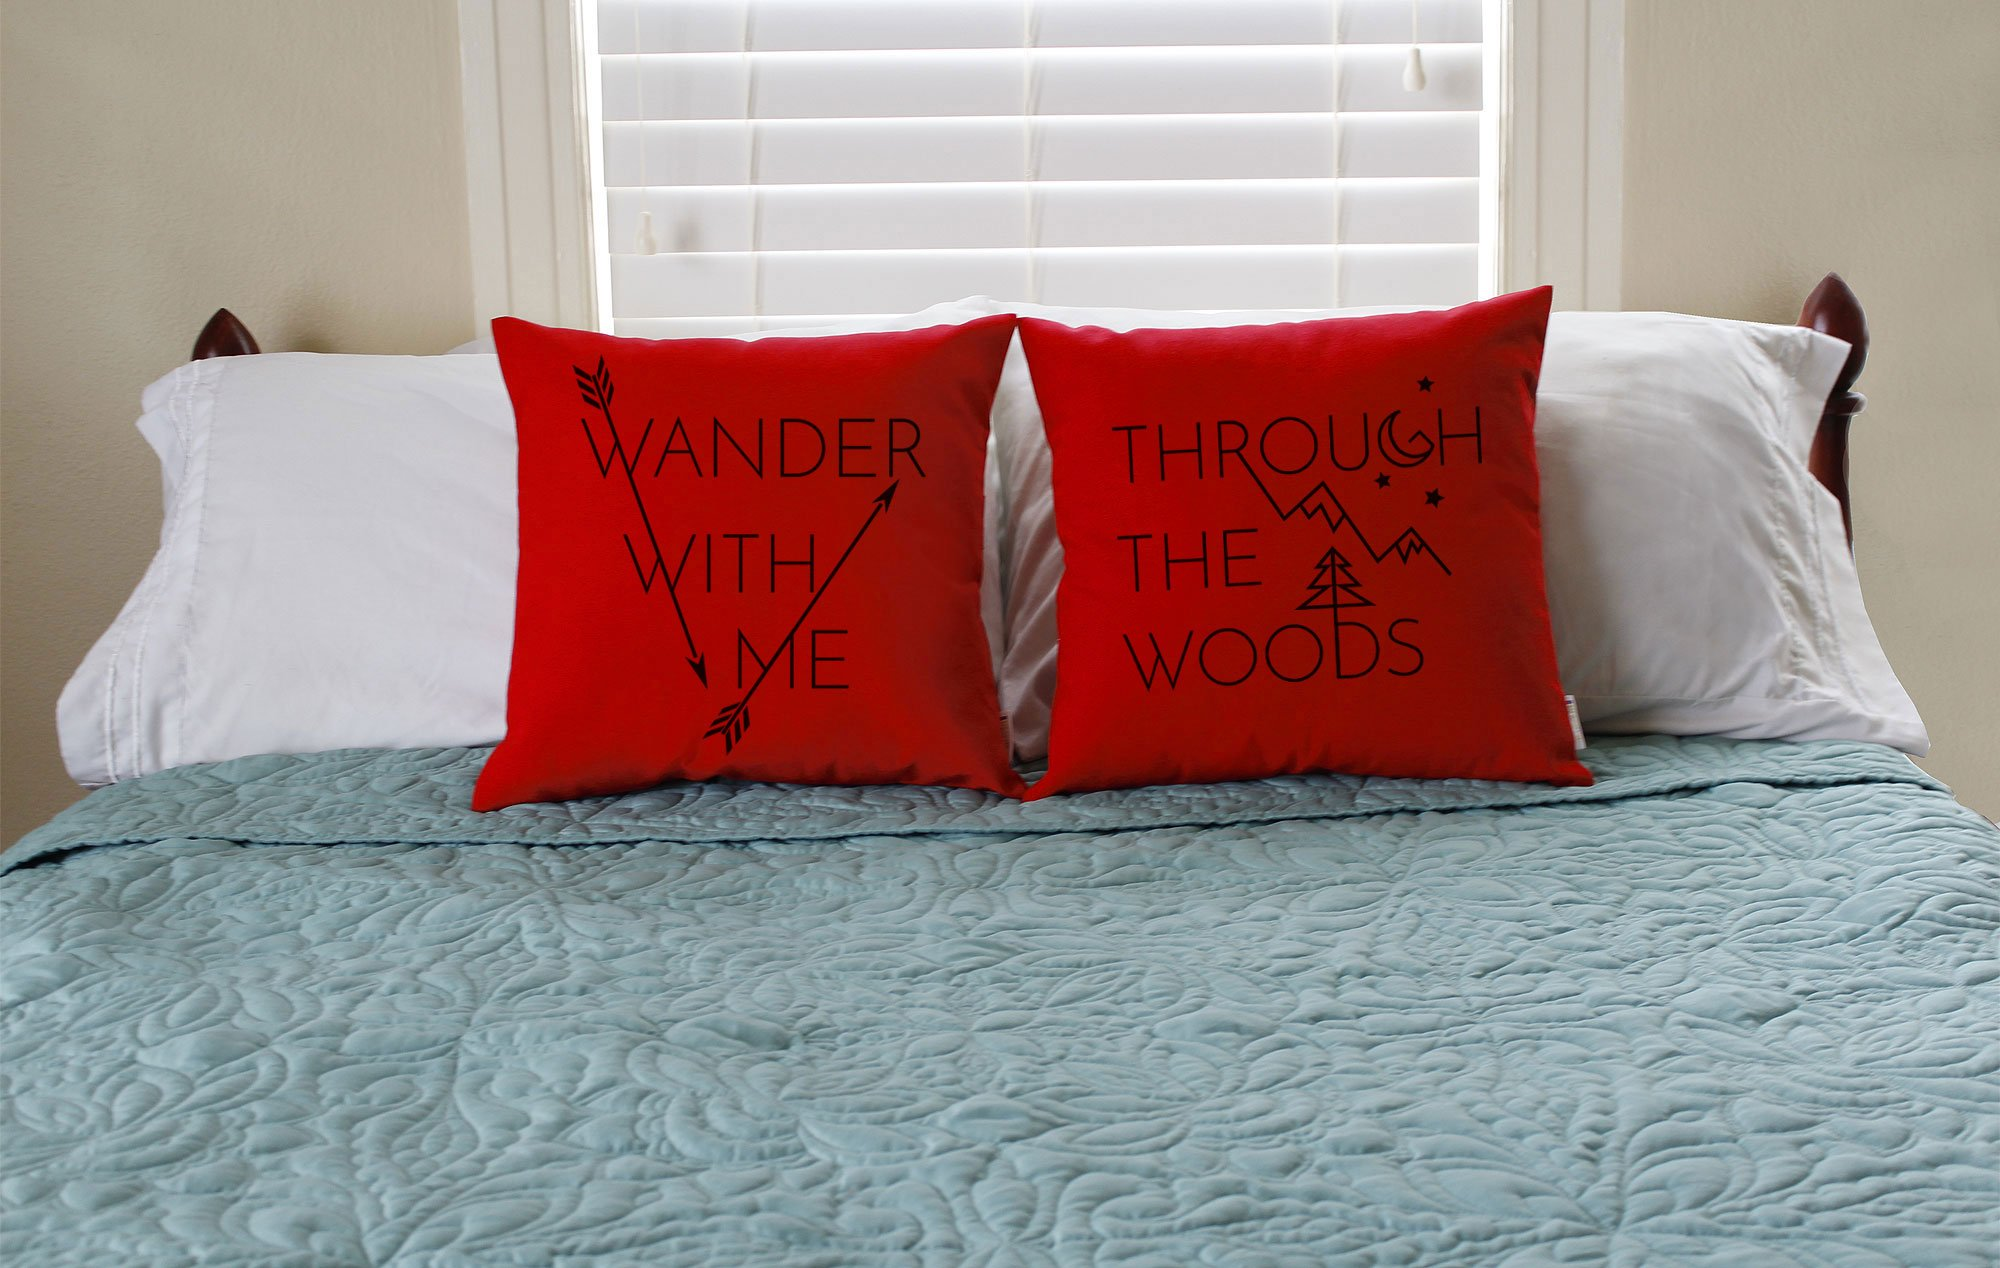 Set of 2 RoomCraft Wander With Me Through the Woods Throw Pillows 20x20 Square Red Indoor-Outdoor Cushions by RoomCraft (Image #3)